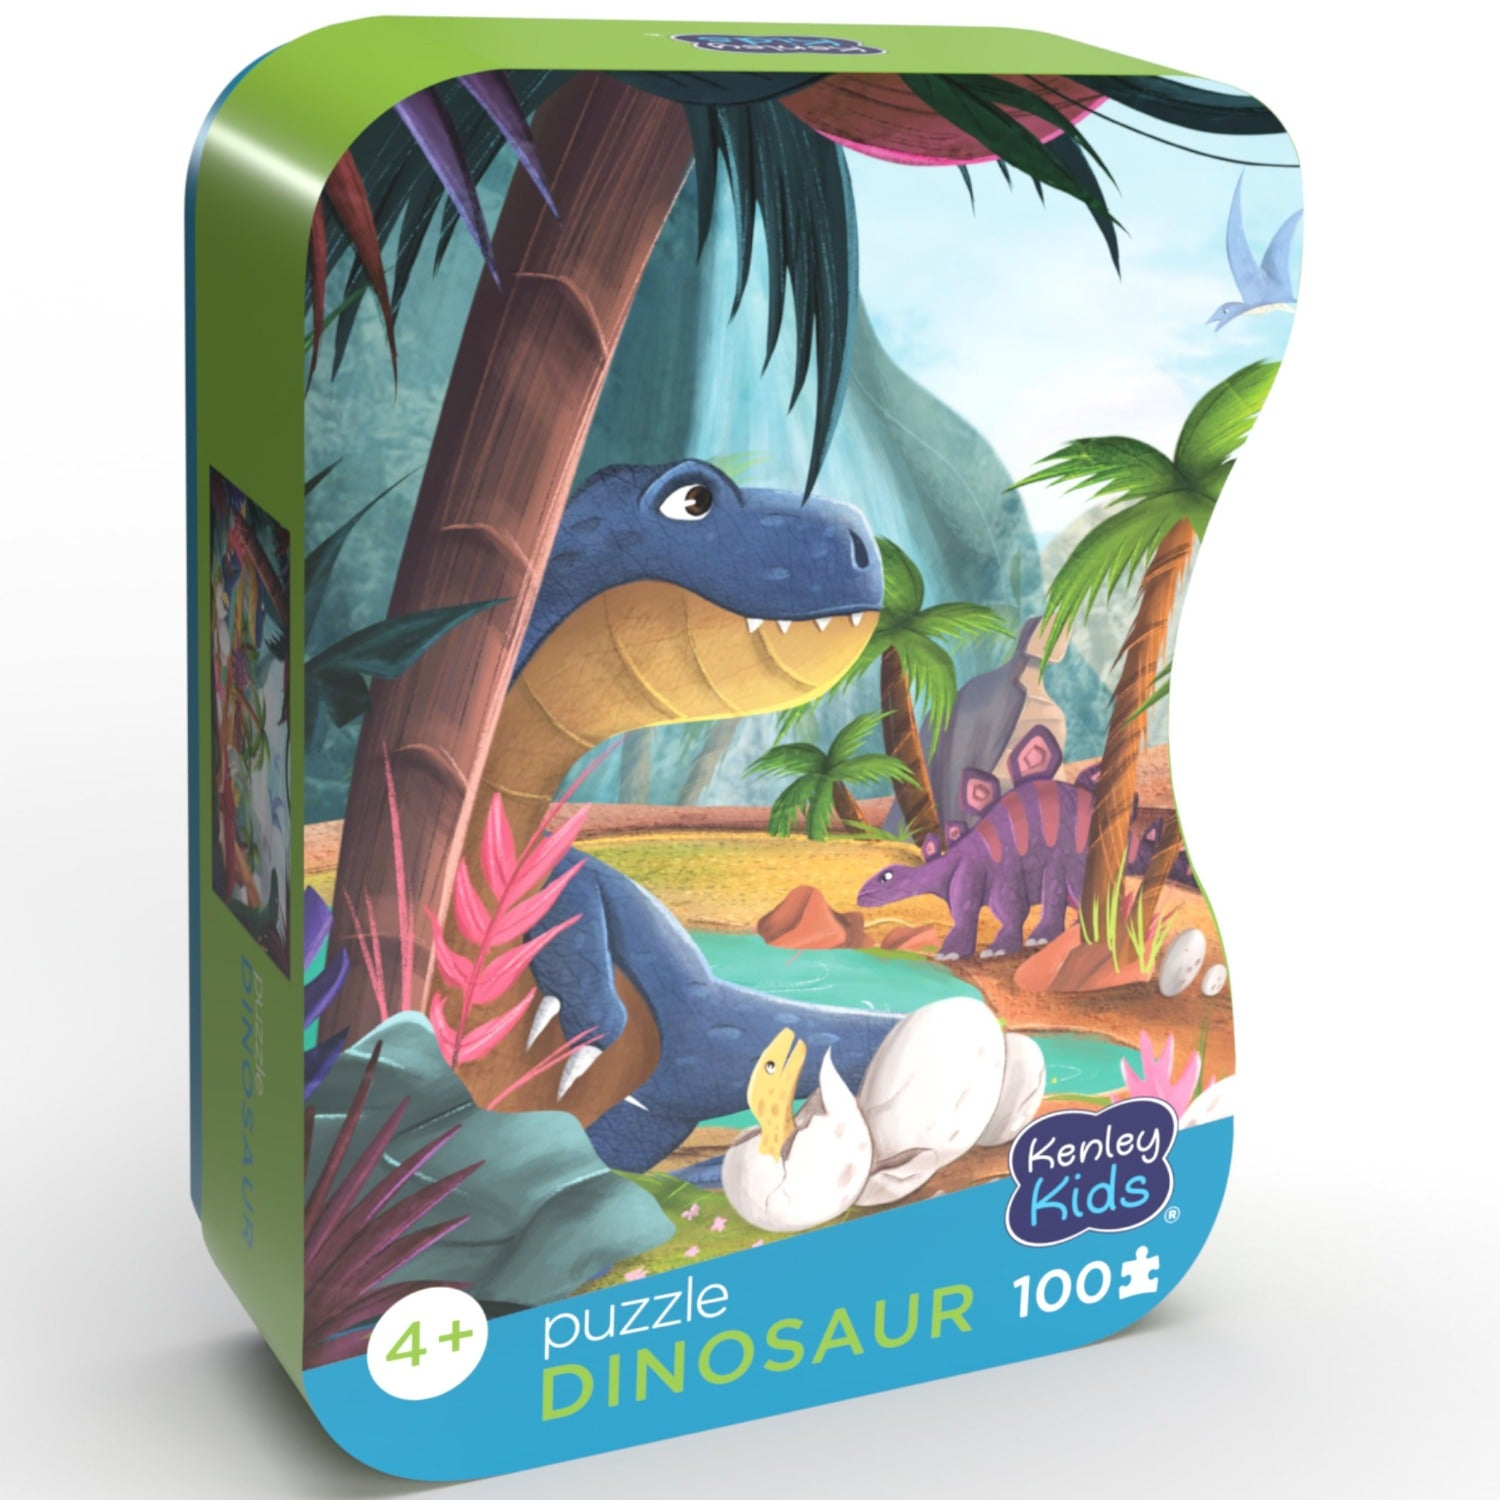 Dinosaur 23.5 x 14.8 100 Piece Puzzles for Kids Ages 3-8 JFIEEI Dinosaur Valley Paper Puzzle Learning Educational Cardboard Puzzles for Birthday Gift Boys Girls